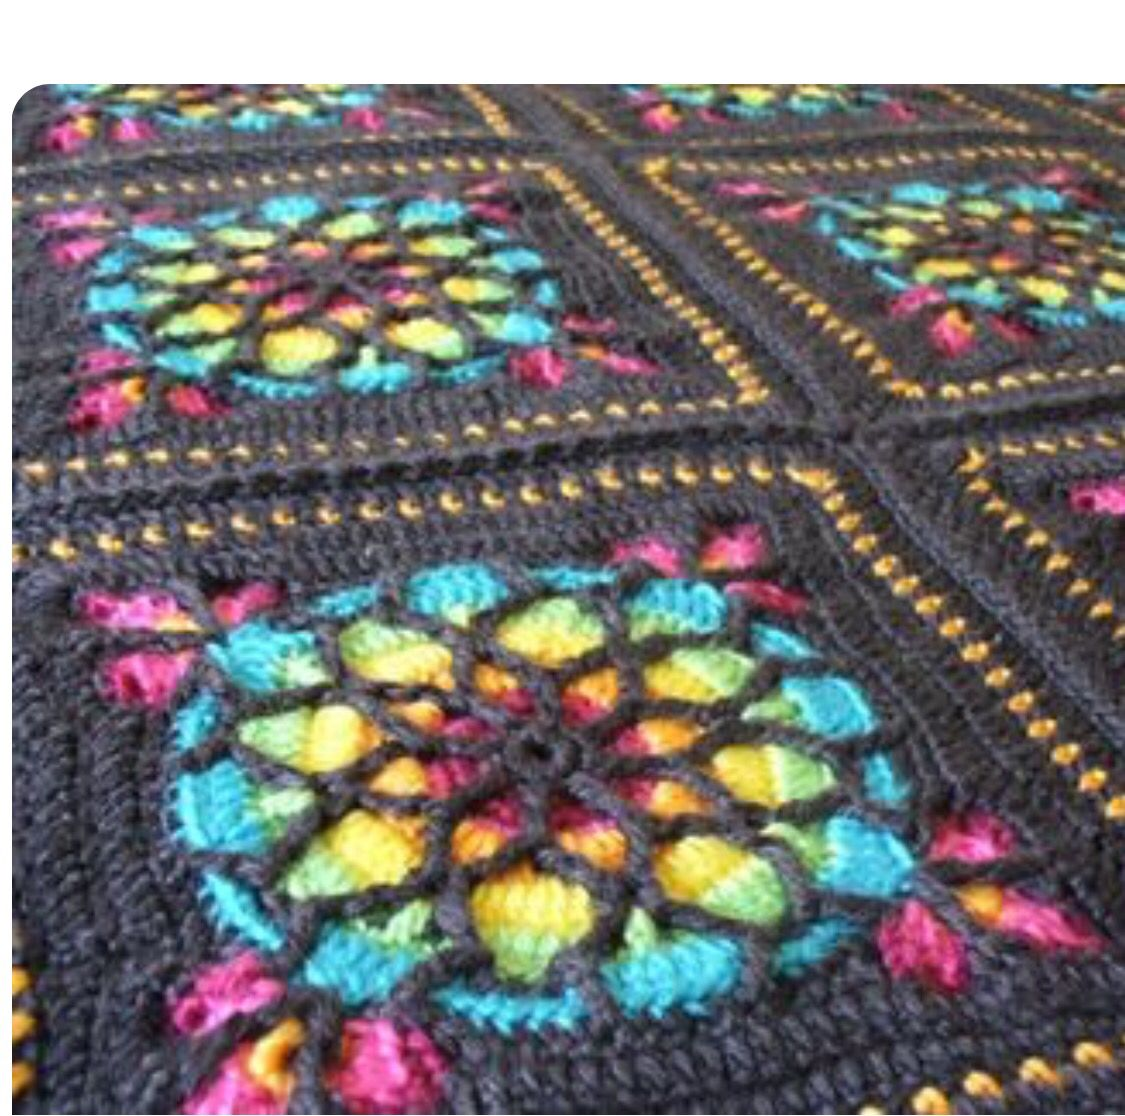 Pin by Theresa Boykin on Crochet Patterns | Pinterest | Crochet ...